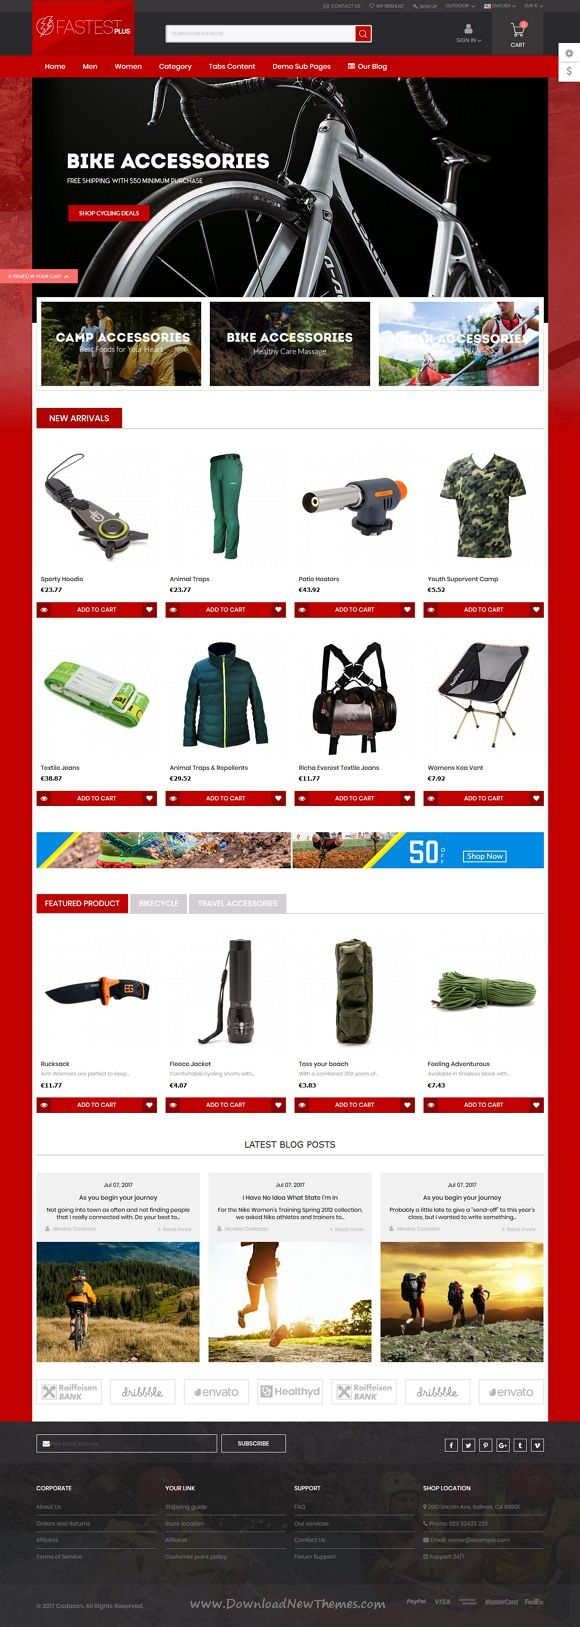 Fastest Plus is clean, stylish and modern design responsive #Prestashop theme for stunning #sports and outdoor #gear store #eCommerce website with 12 niche homepage layouts download now..